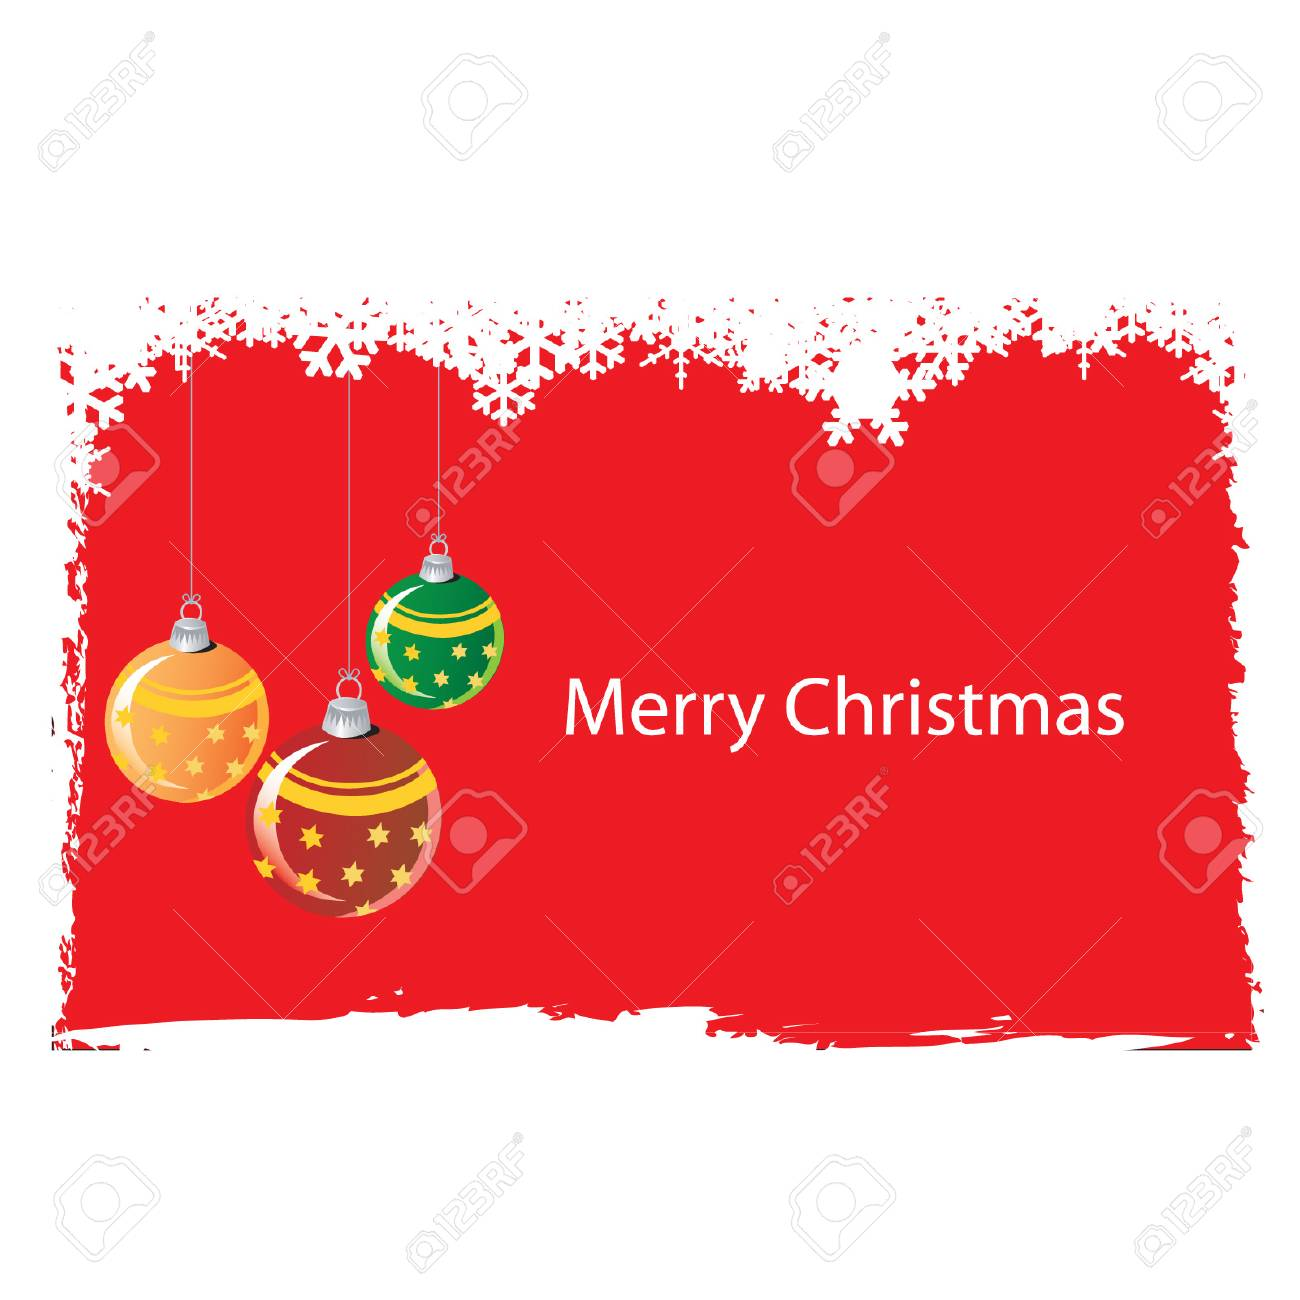 Christmas Background Stock Vector - 4009277